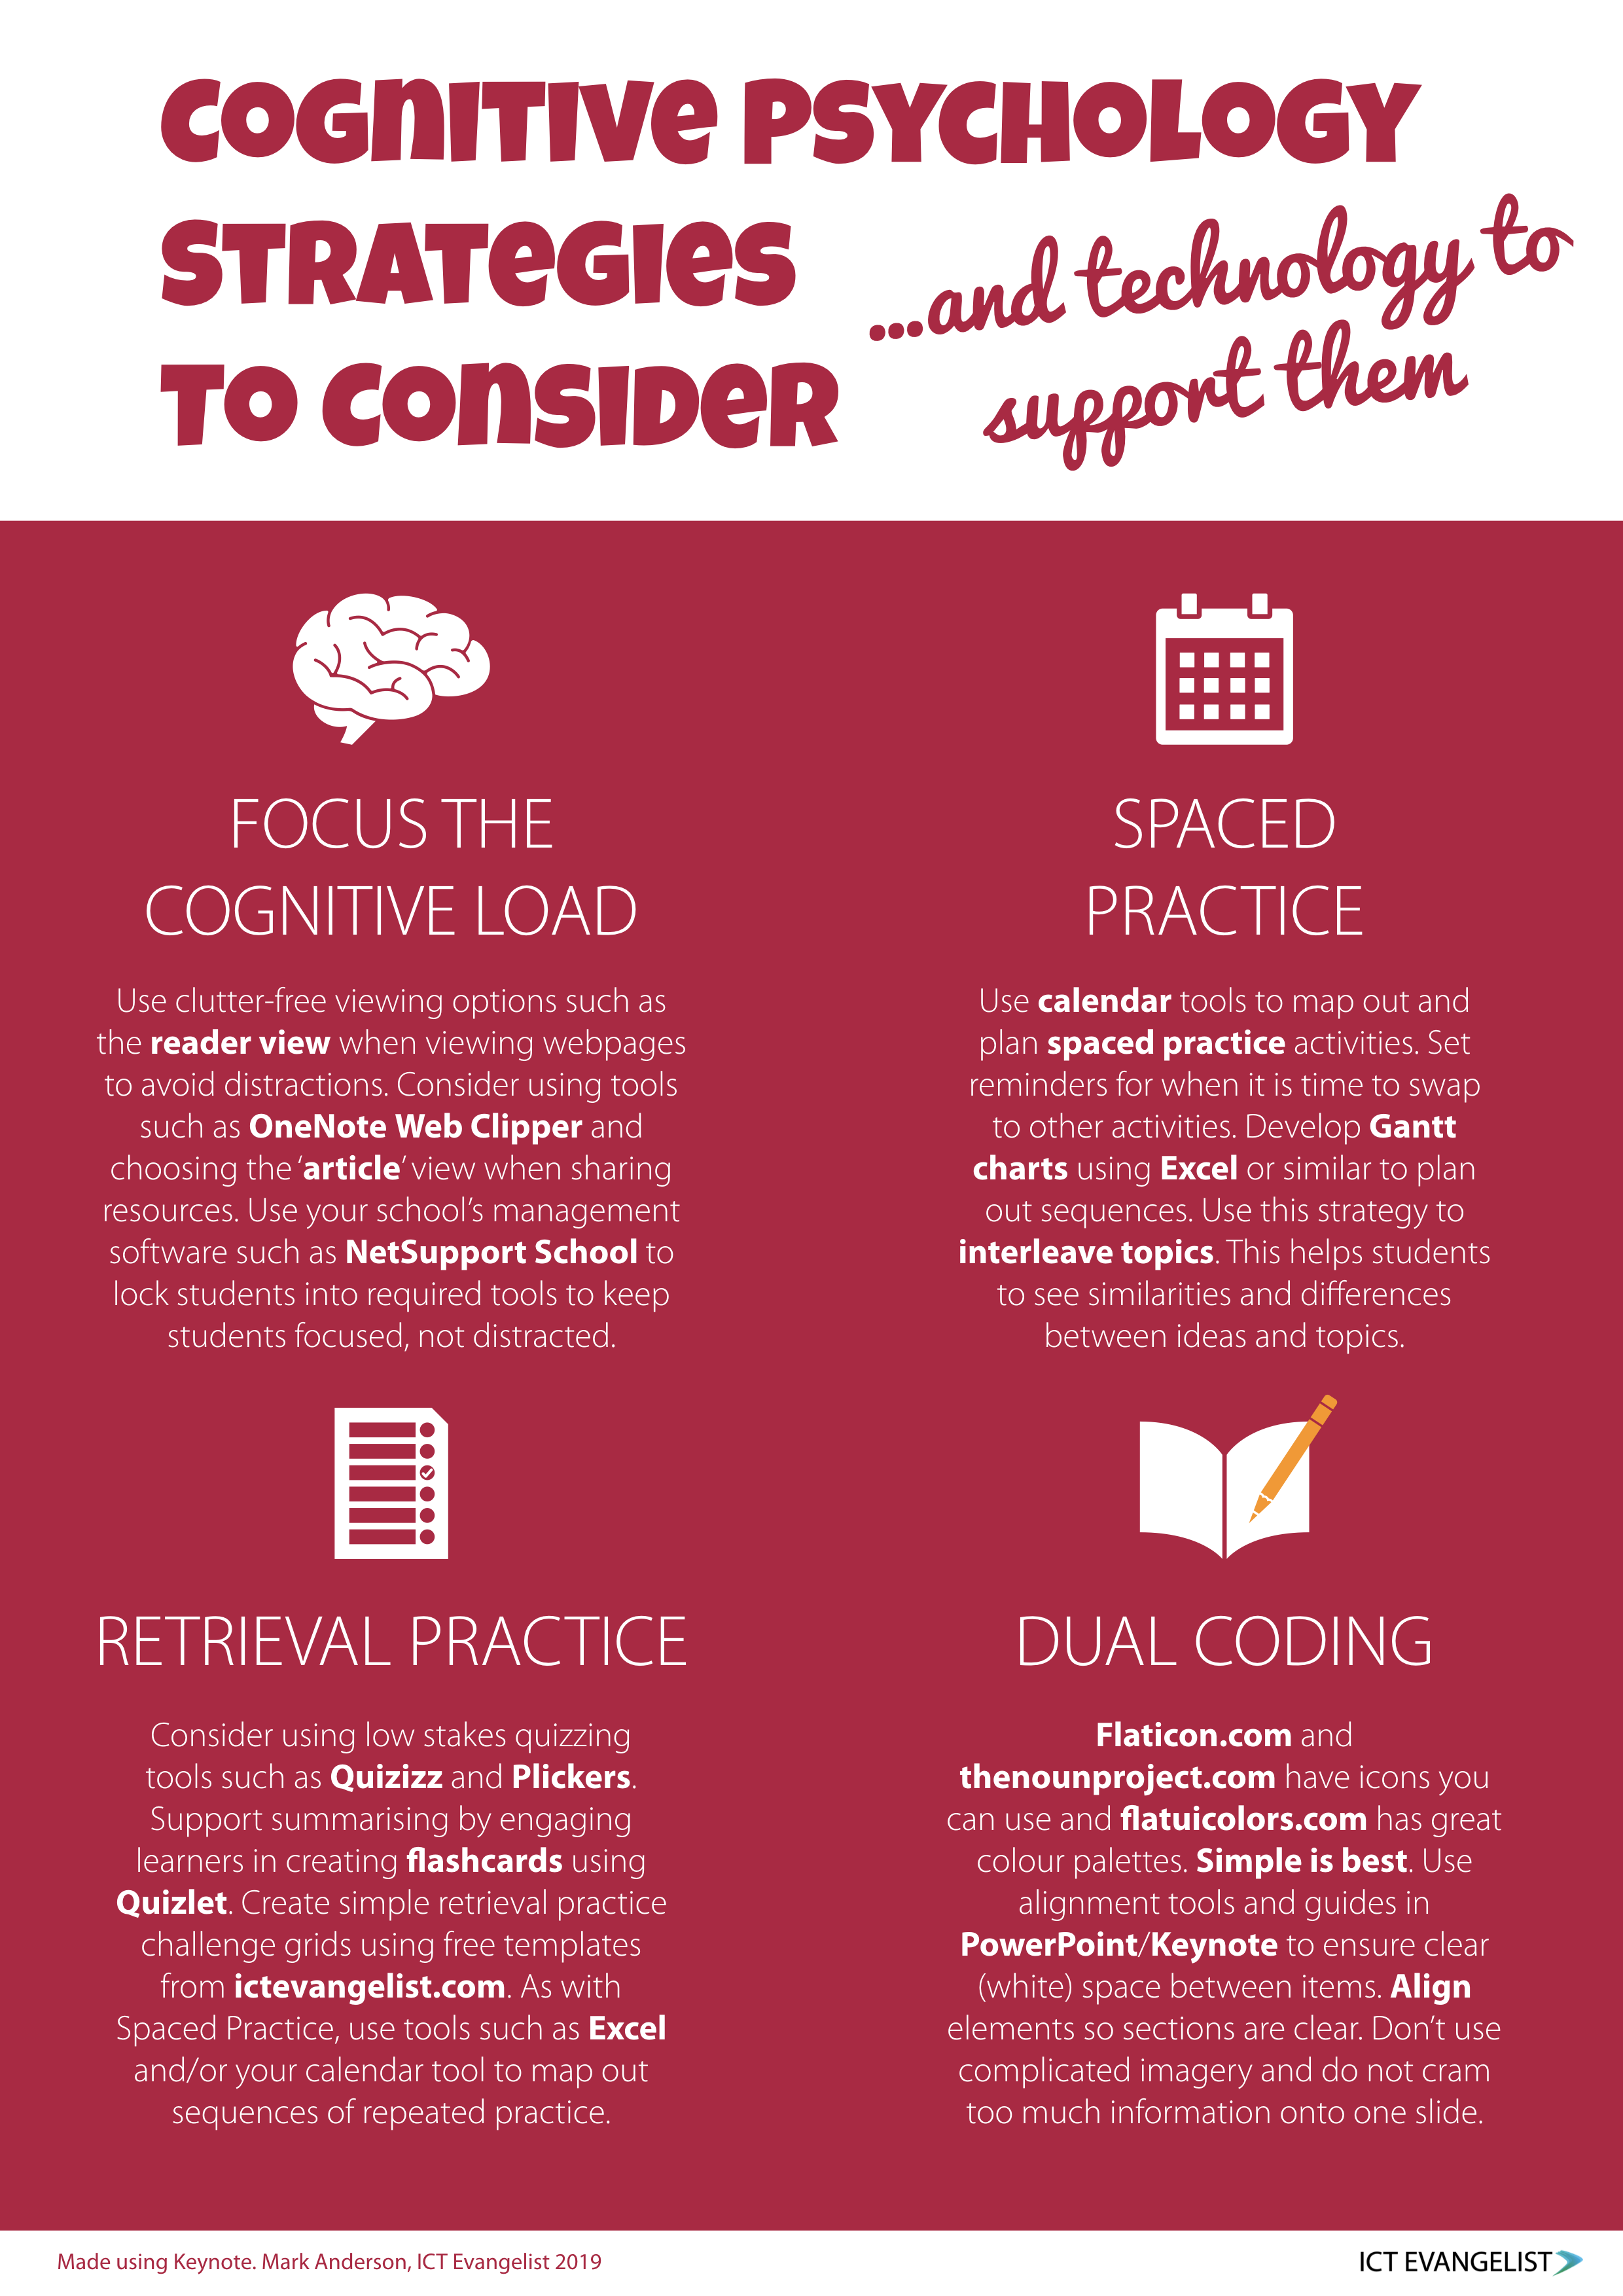 An infographic exploring Cognitive Psychology Strategies To Consider